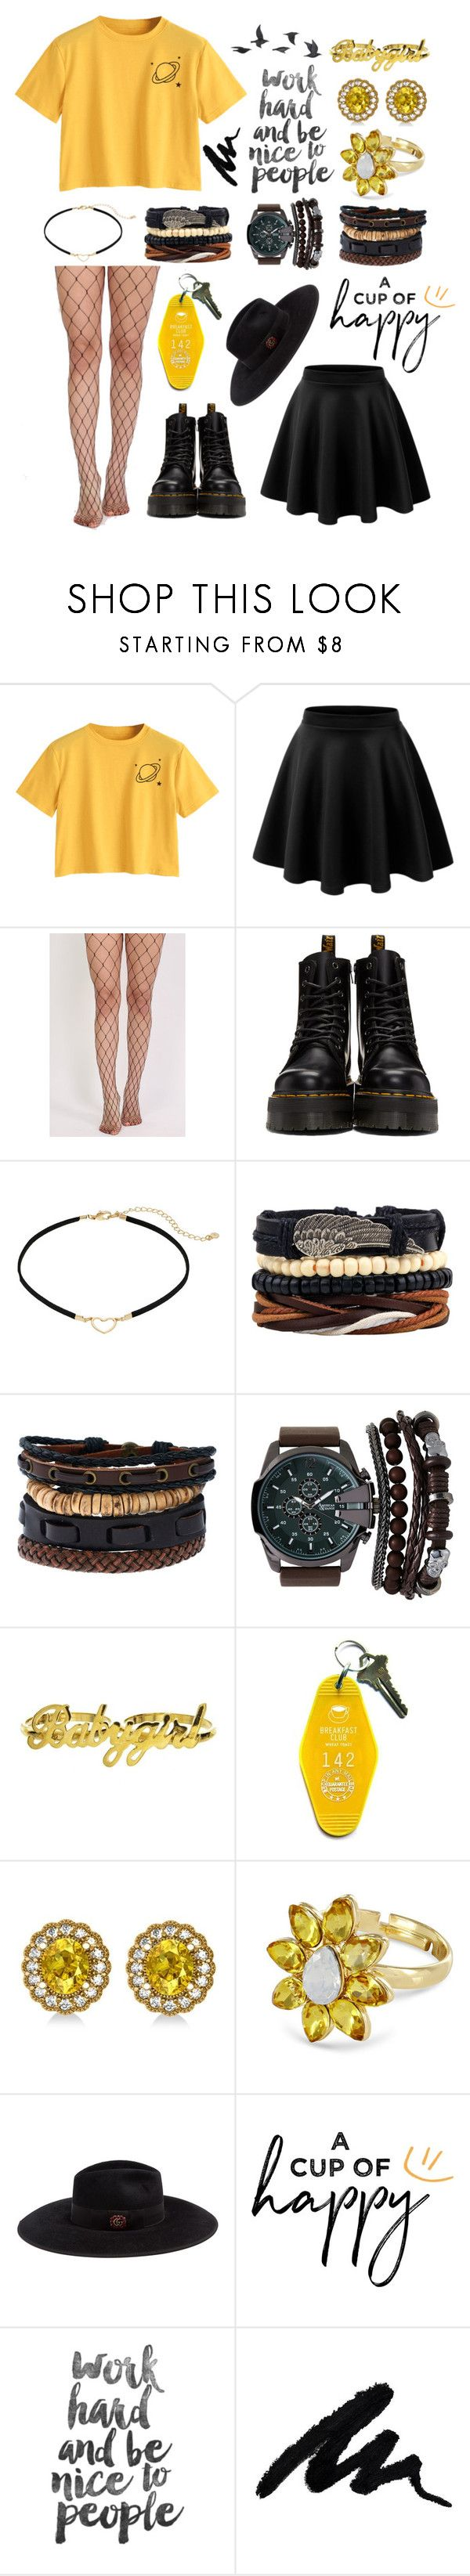 """행복 // Happiness"" by twenty-one-kitchen-sinks ❤ liked on Polyvore featuring LE3NO, Pilot, Dr. Martens, LC Lauren Conrad, A.X.N.Y., Three Potato Four, Allurez, Johnny Loves Rosie, Gucci and Jayson Home"